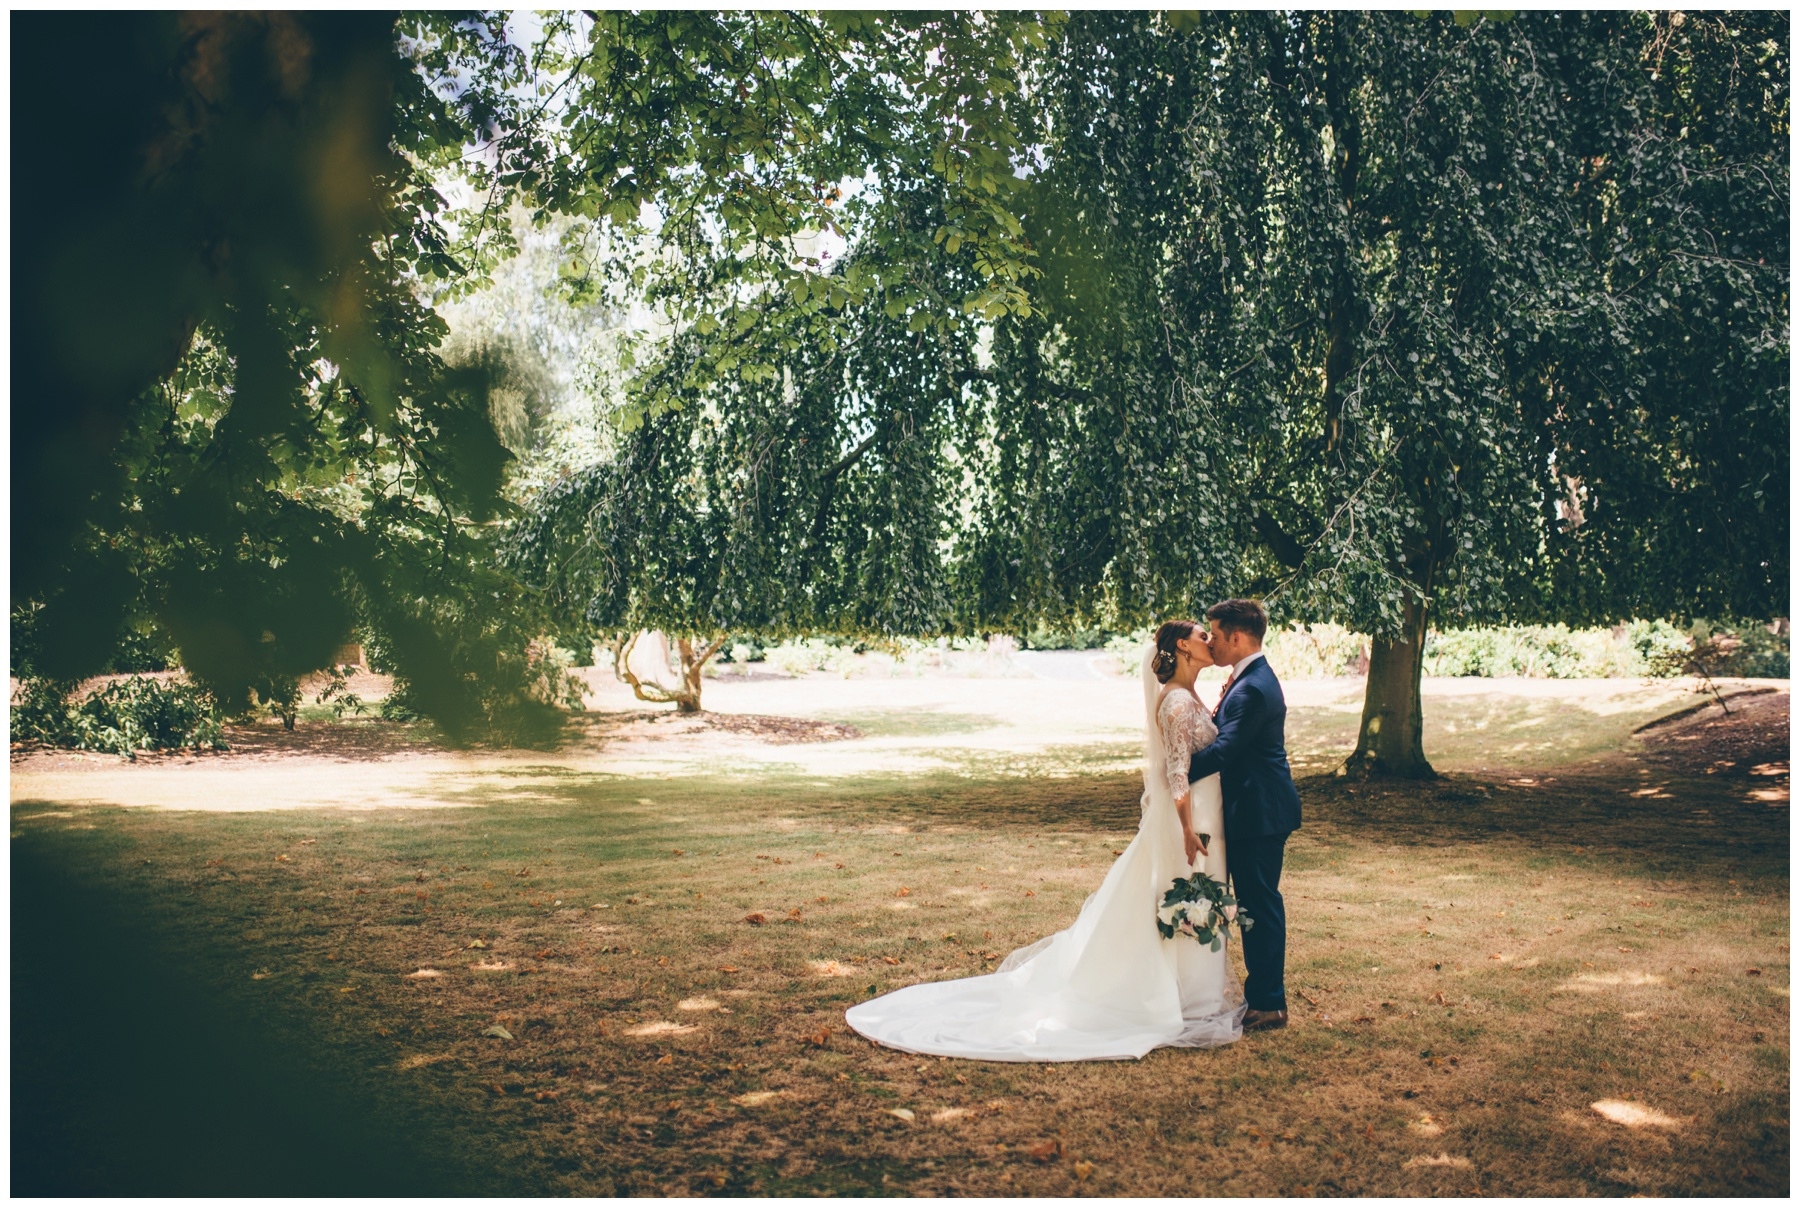 Beautiful bride and groom in the grounds at Tilstone House in Cheshire.